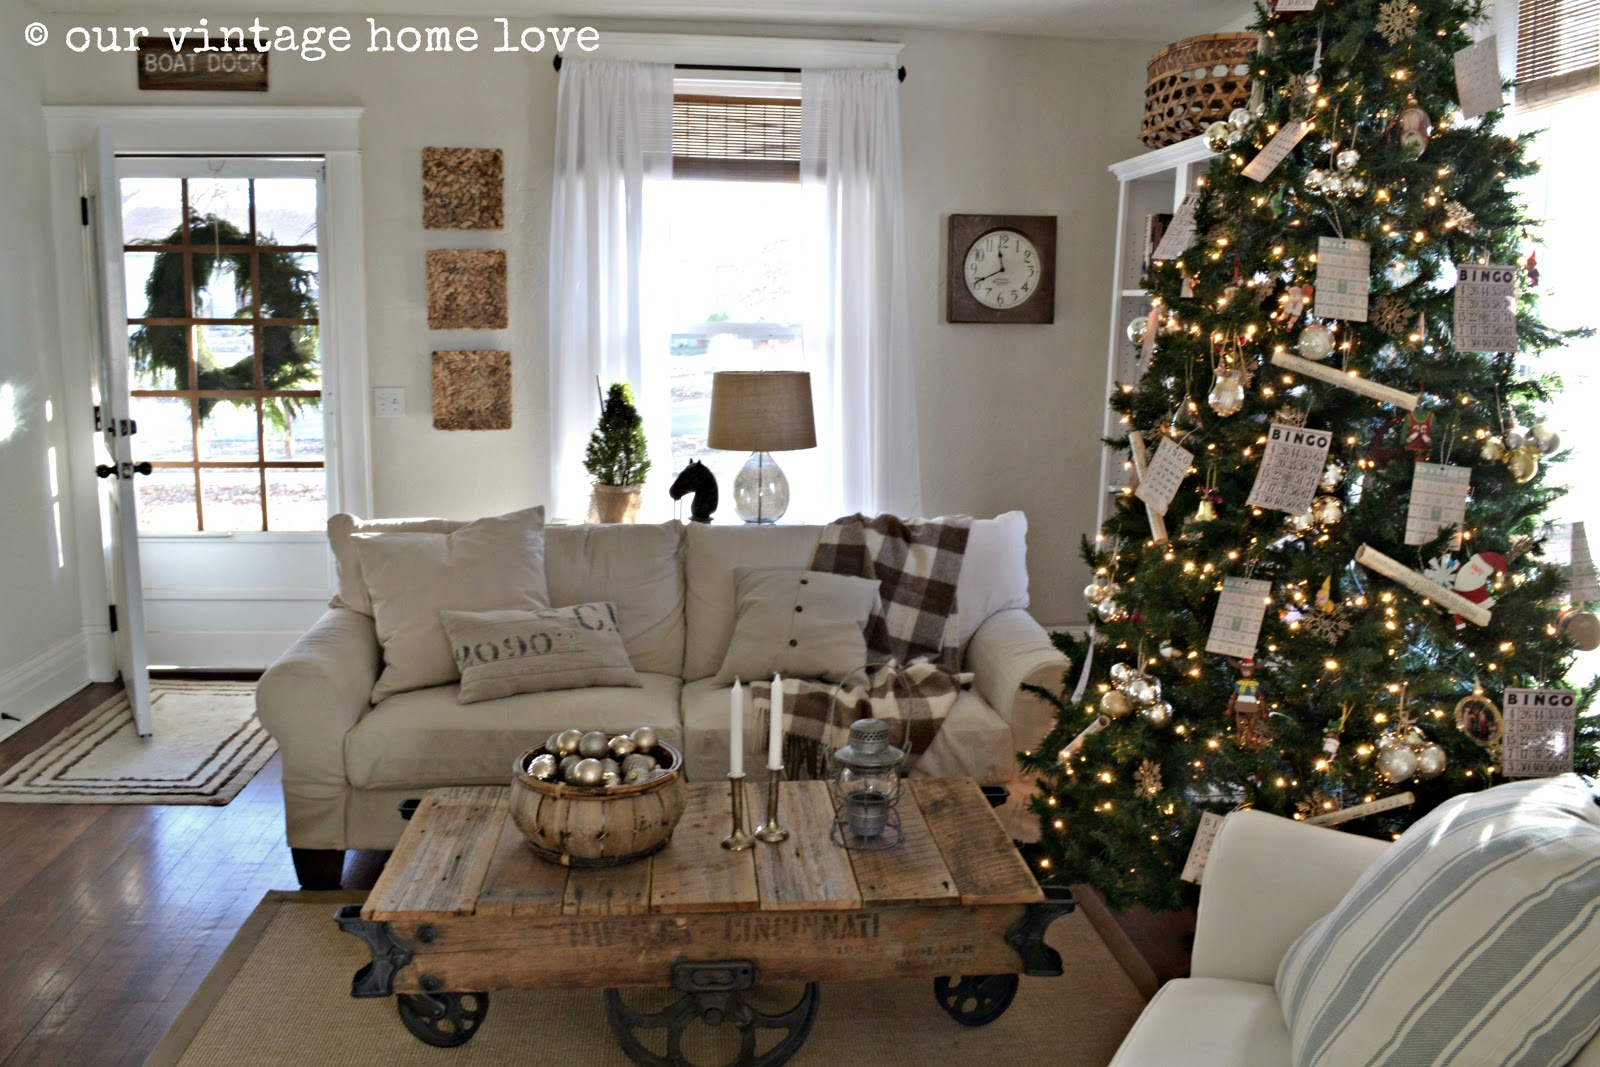 Our vintage home love 2012 christmas decor ideas for Moose decorations home